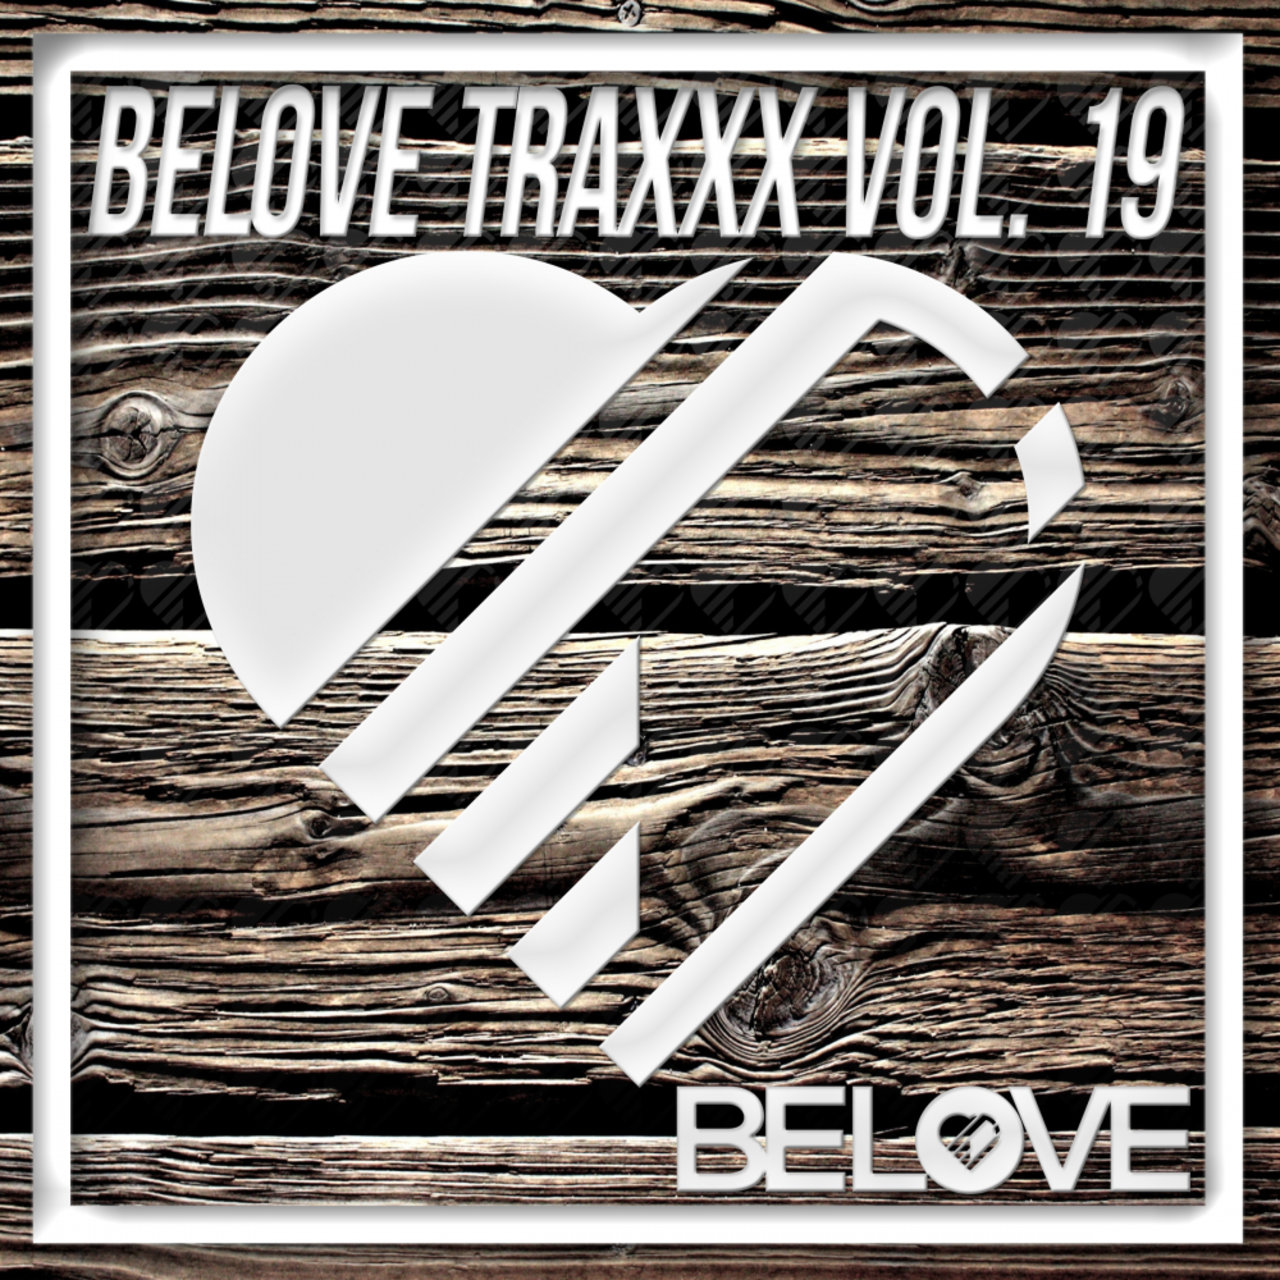 BeLoveTraxxx, Vol. 19